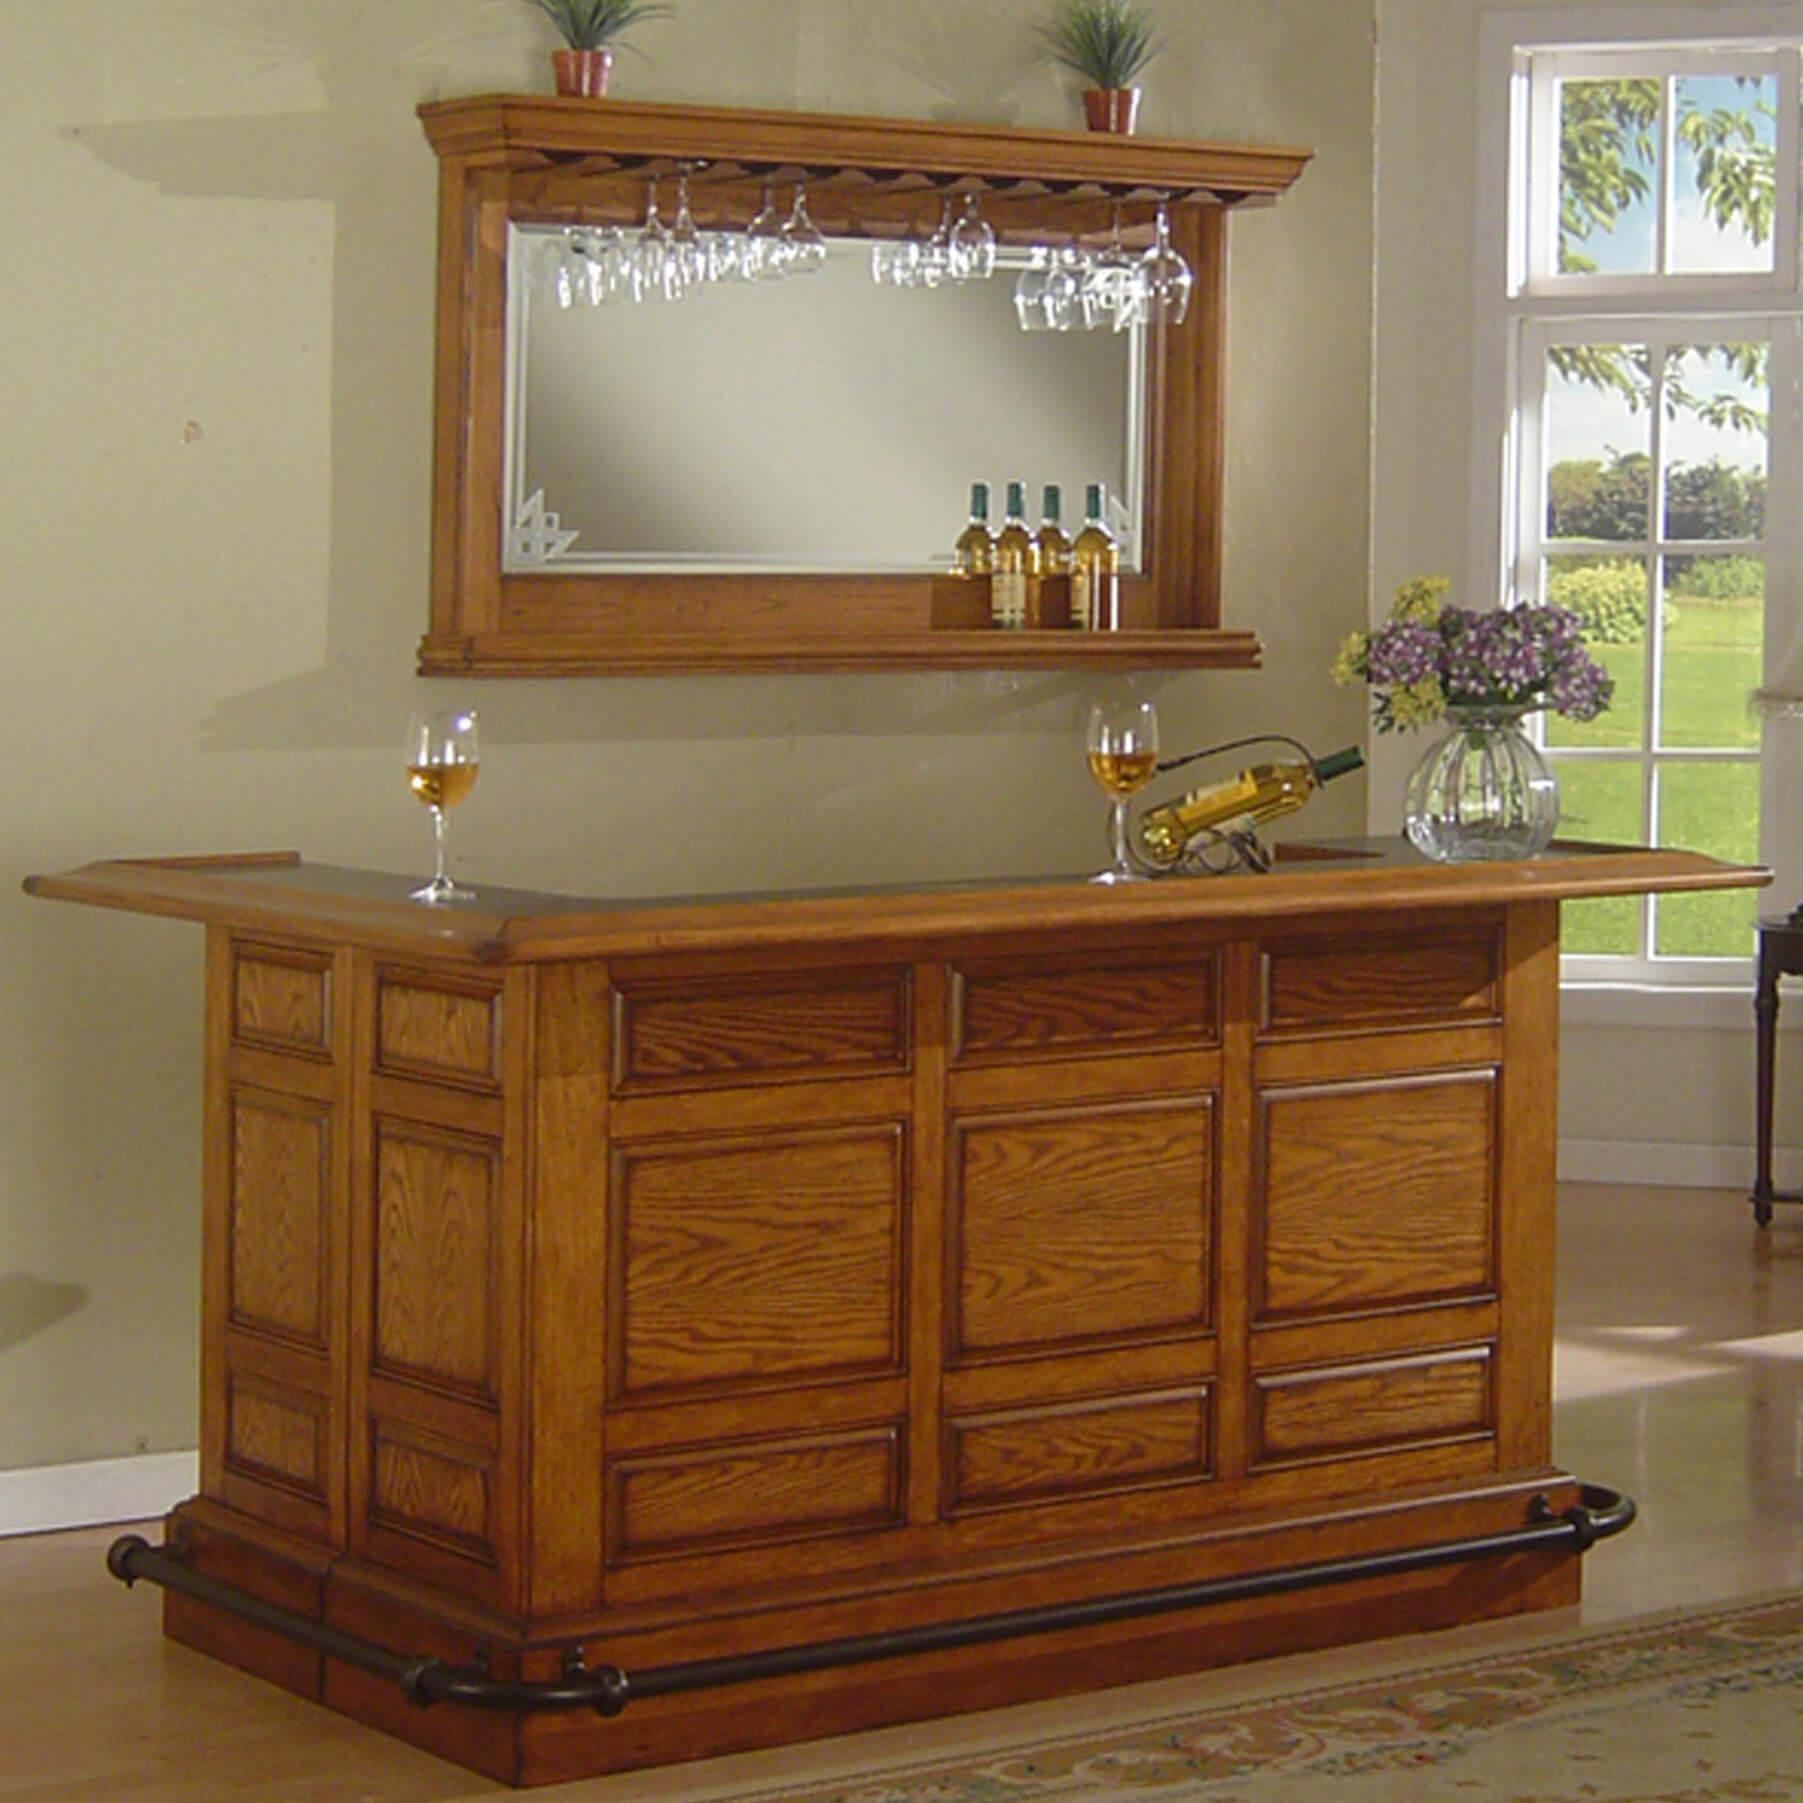 Amazing Solid Wood Home Bar With Wrap Around Counter.